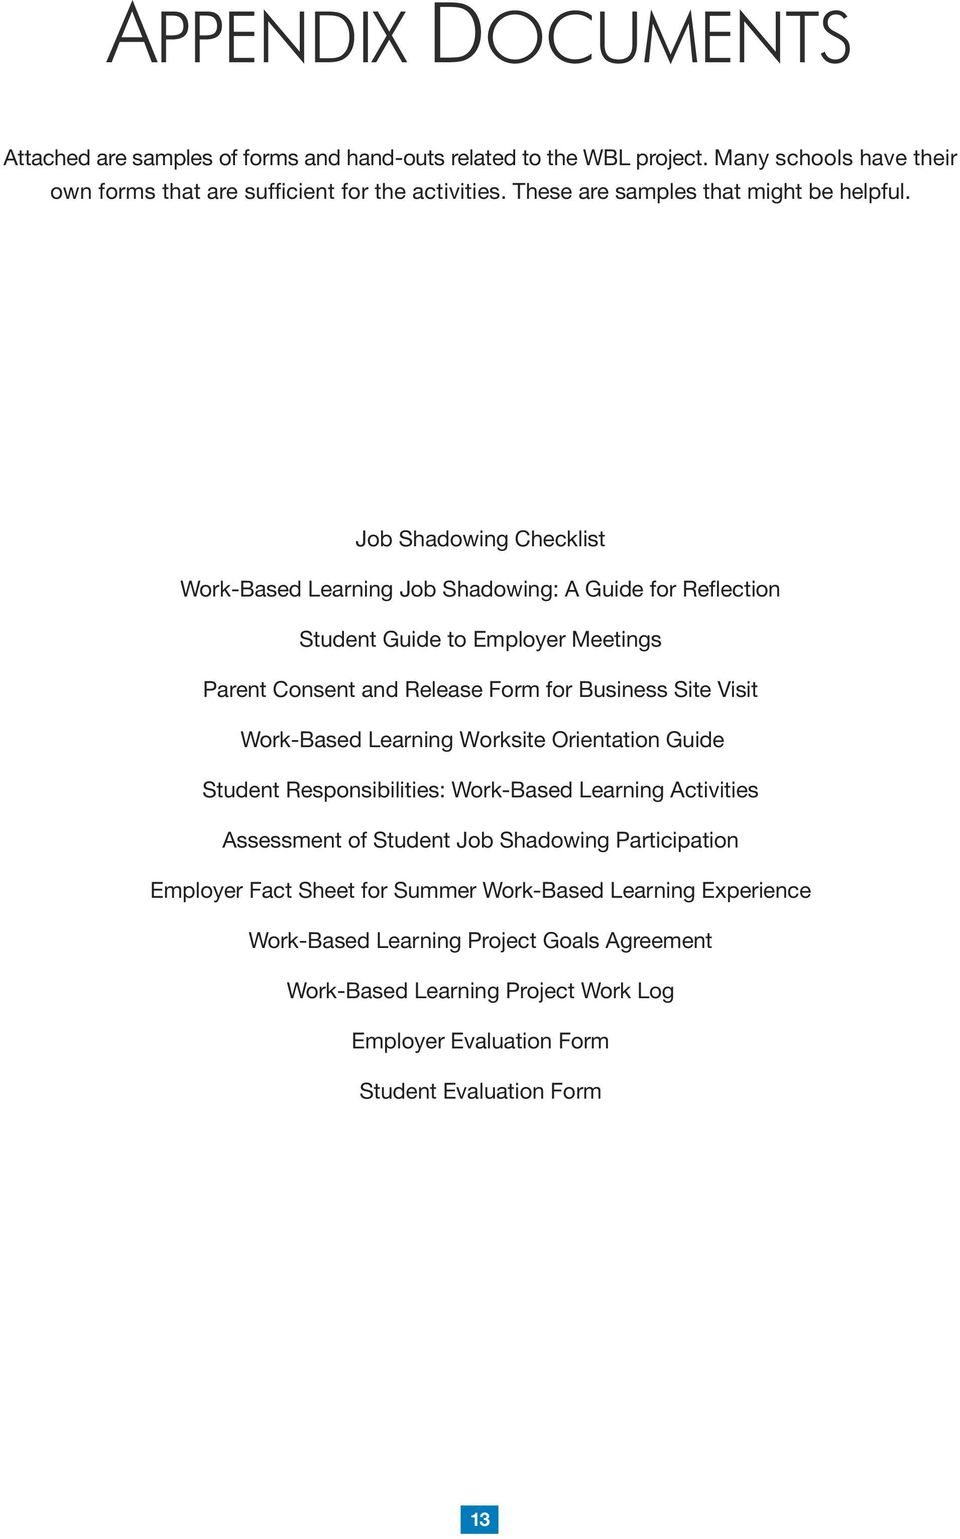 Job Shadowing Checklist Work-Based Learning Job Shadowing: A Guide for Reflection Student Guide to Employer Meetings Parent Consent and Release Form for Business Site Visit